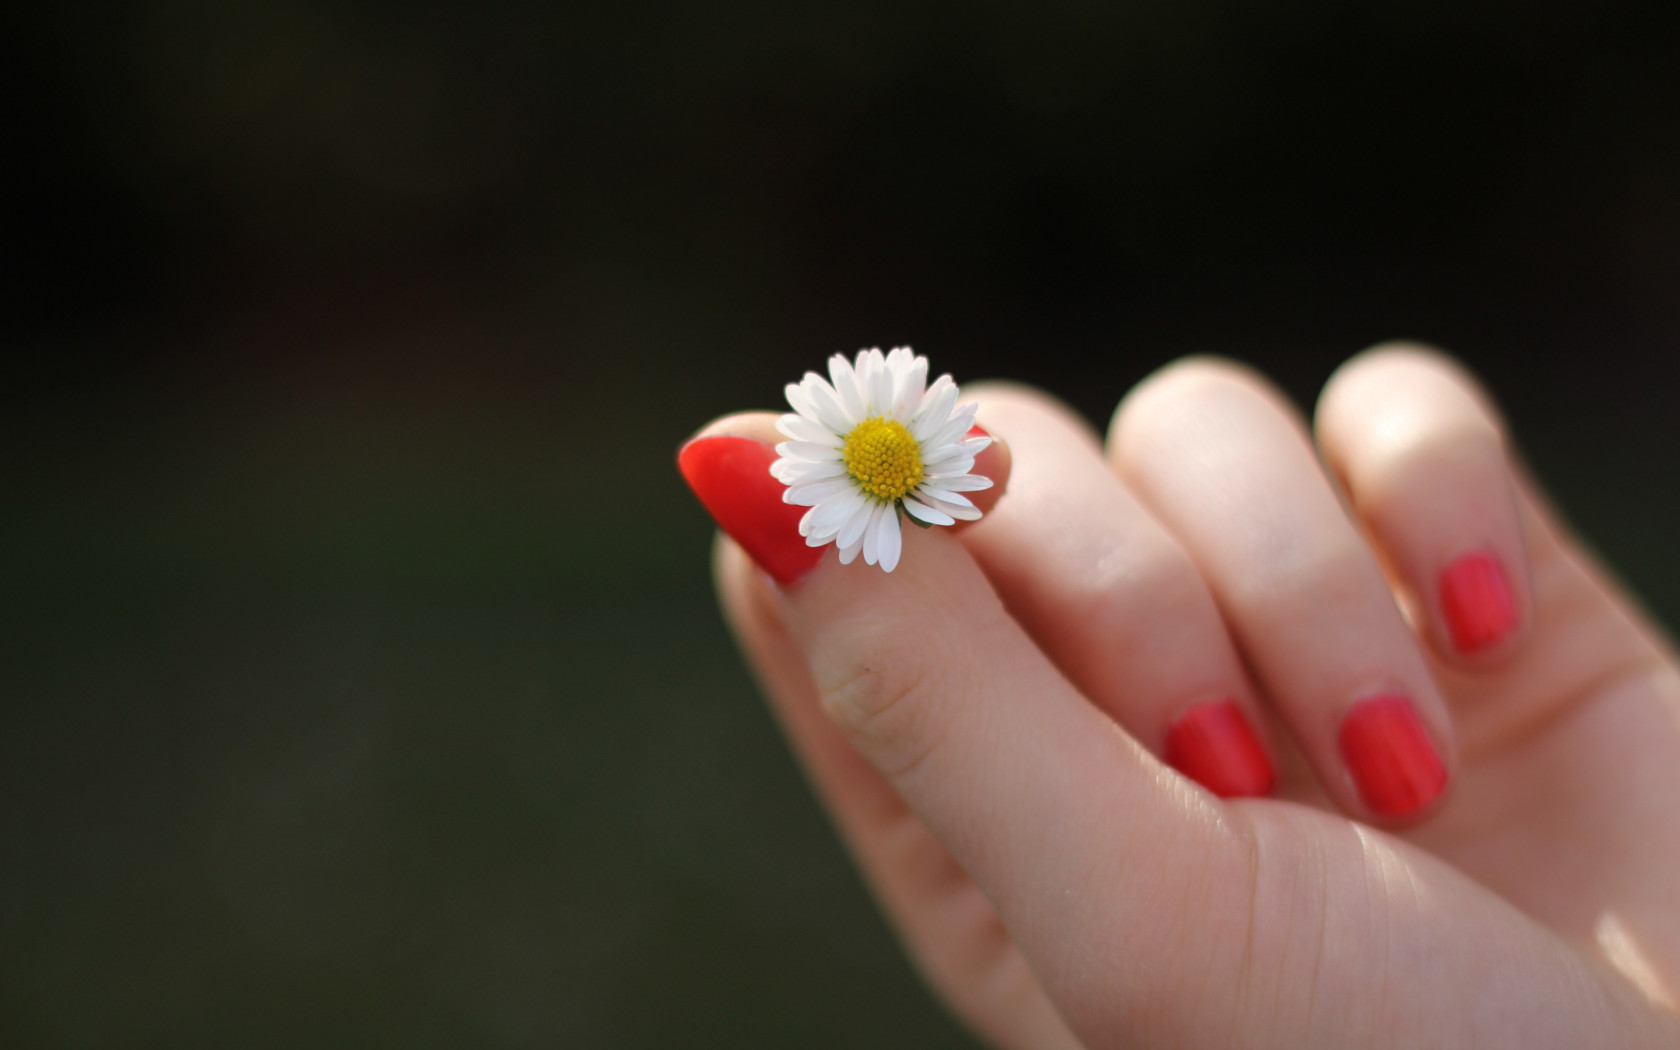 Girl with red nails and a daisy flower wallpaper 1680x1050